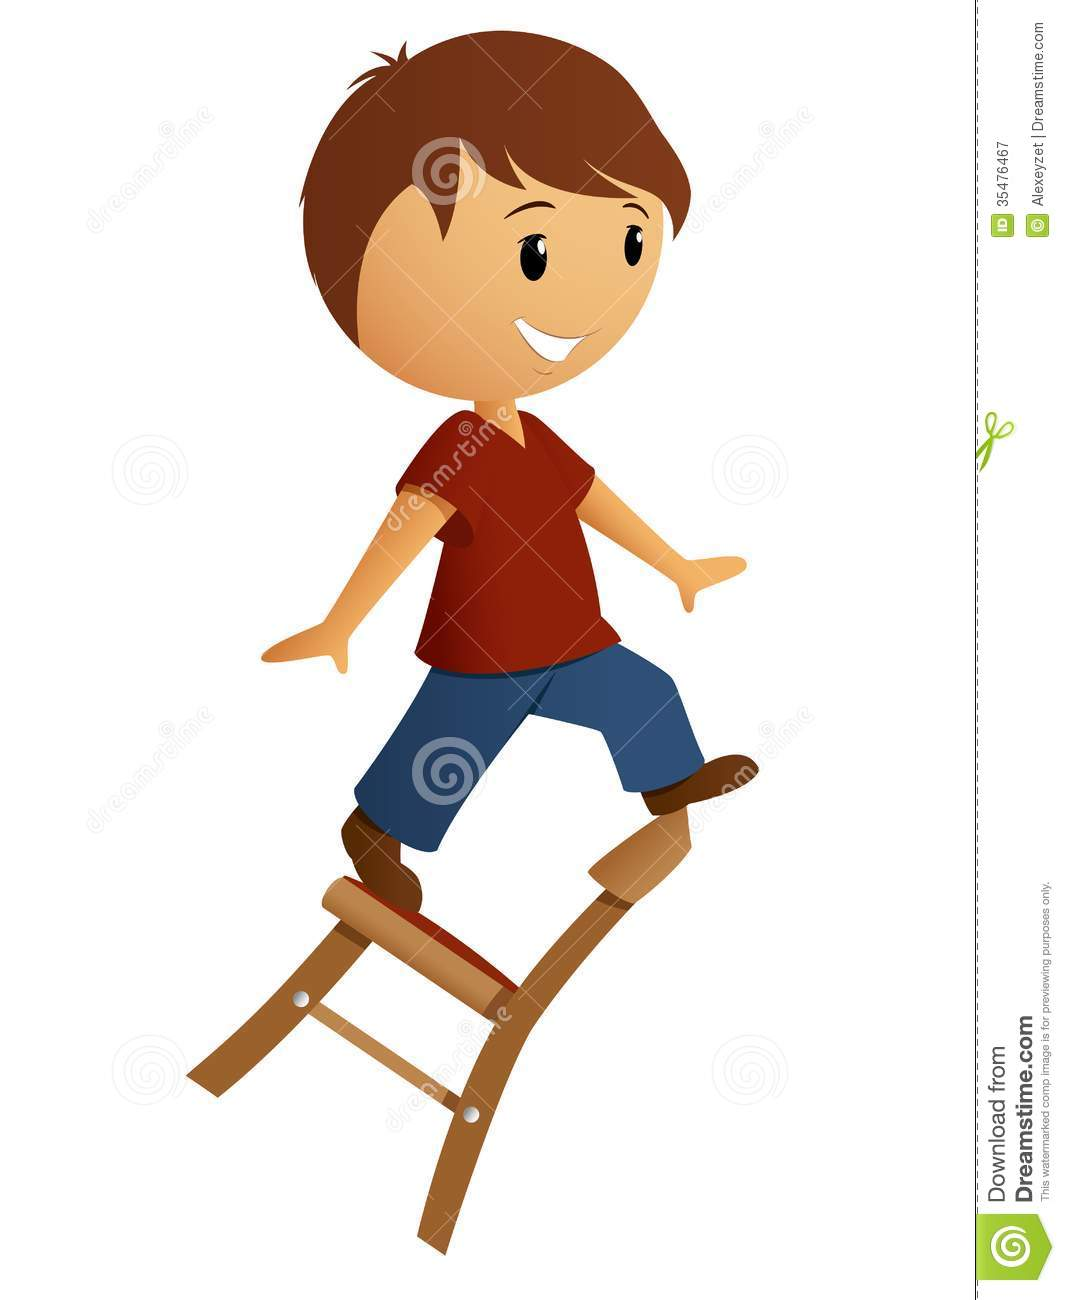 Boy balance on the chair stock vector. Illustration of ...